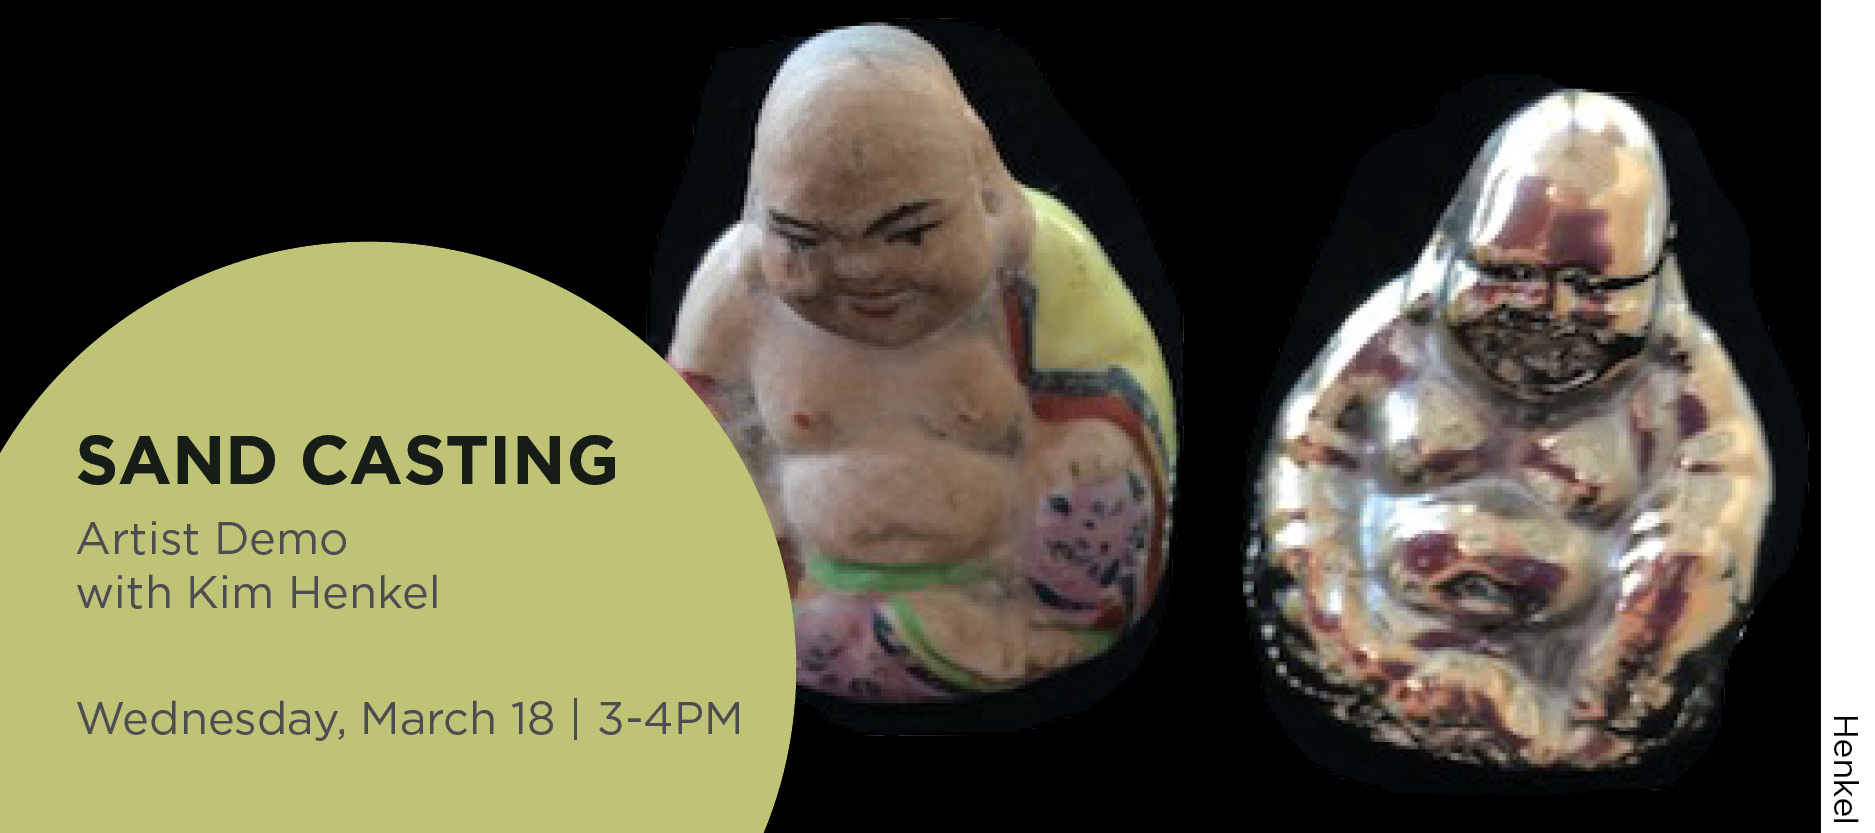 Sand Casting artist demo with Kim Henkel, Wednesday, March 18 from 3-4PM